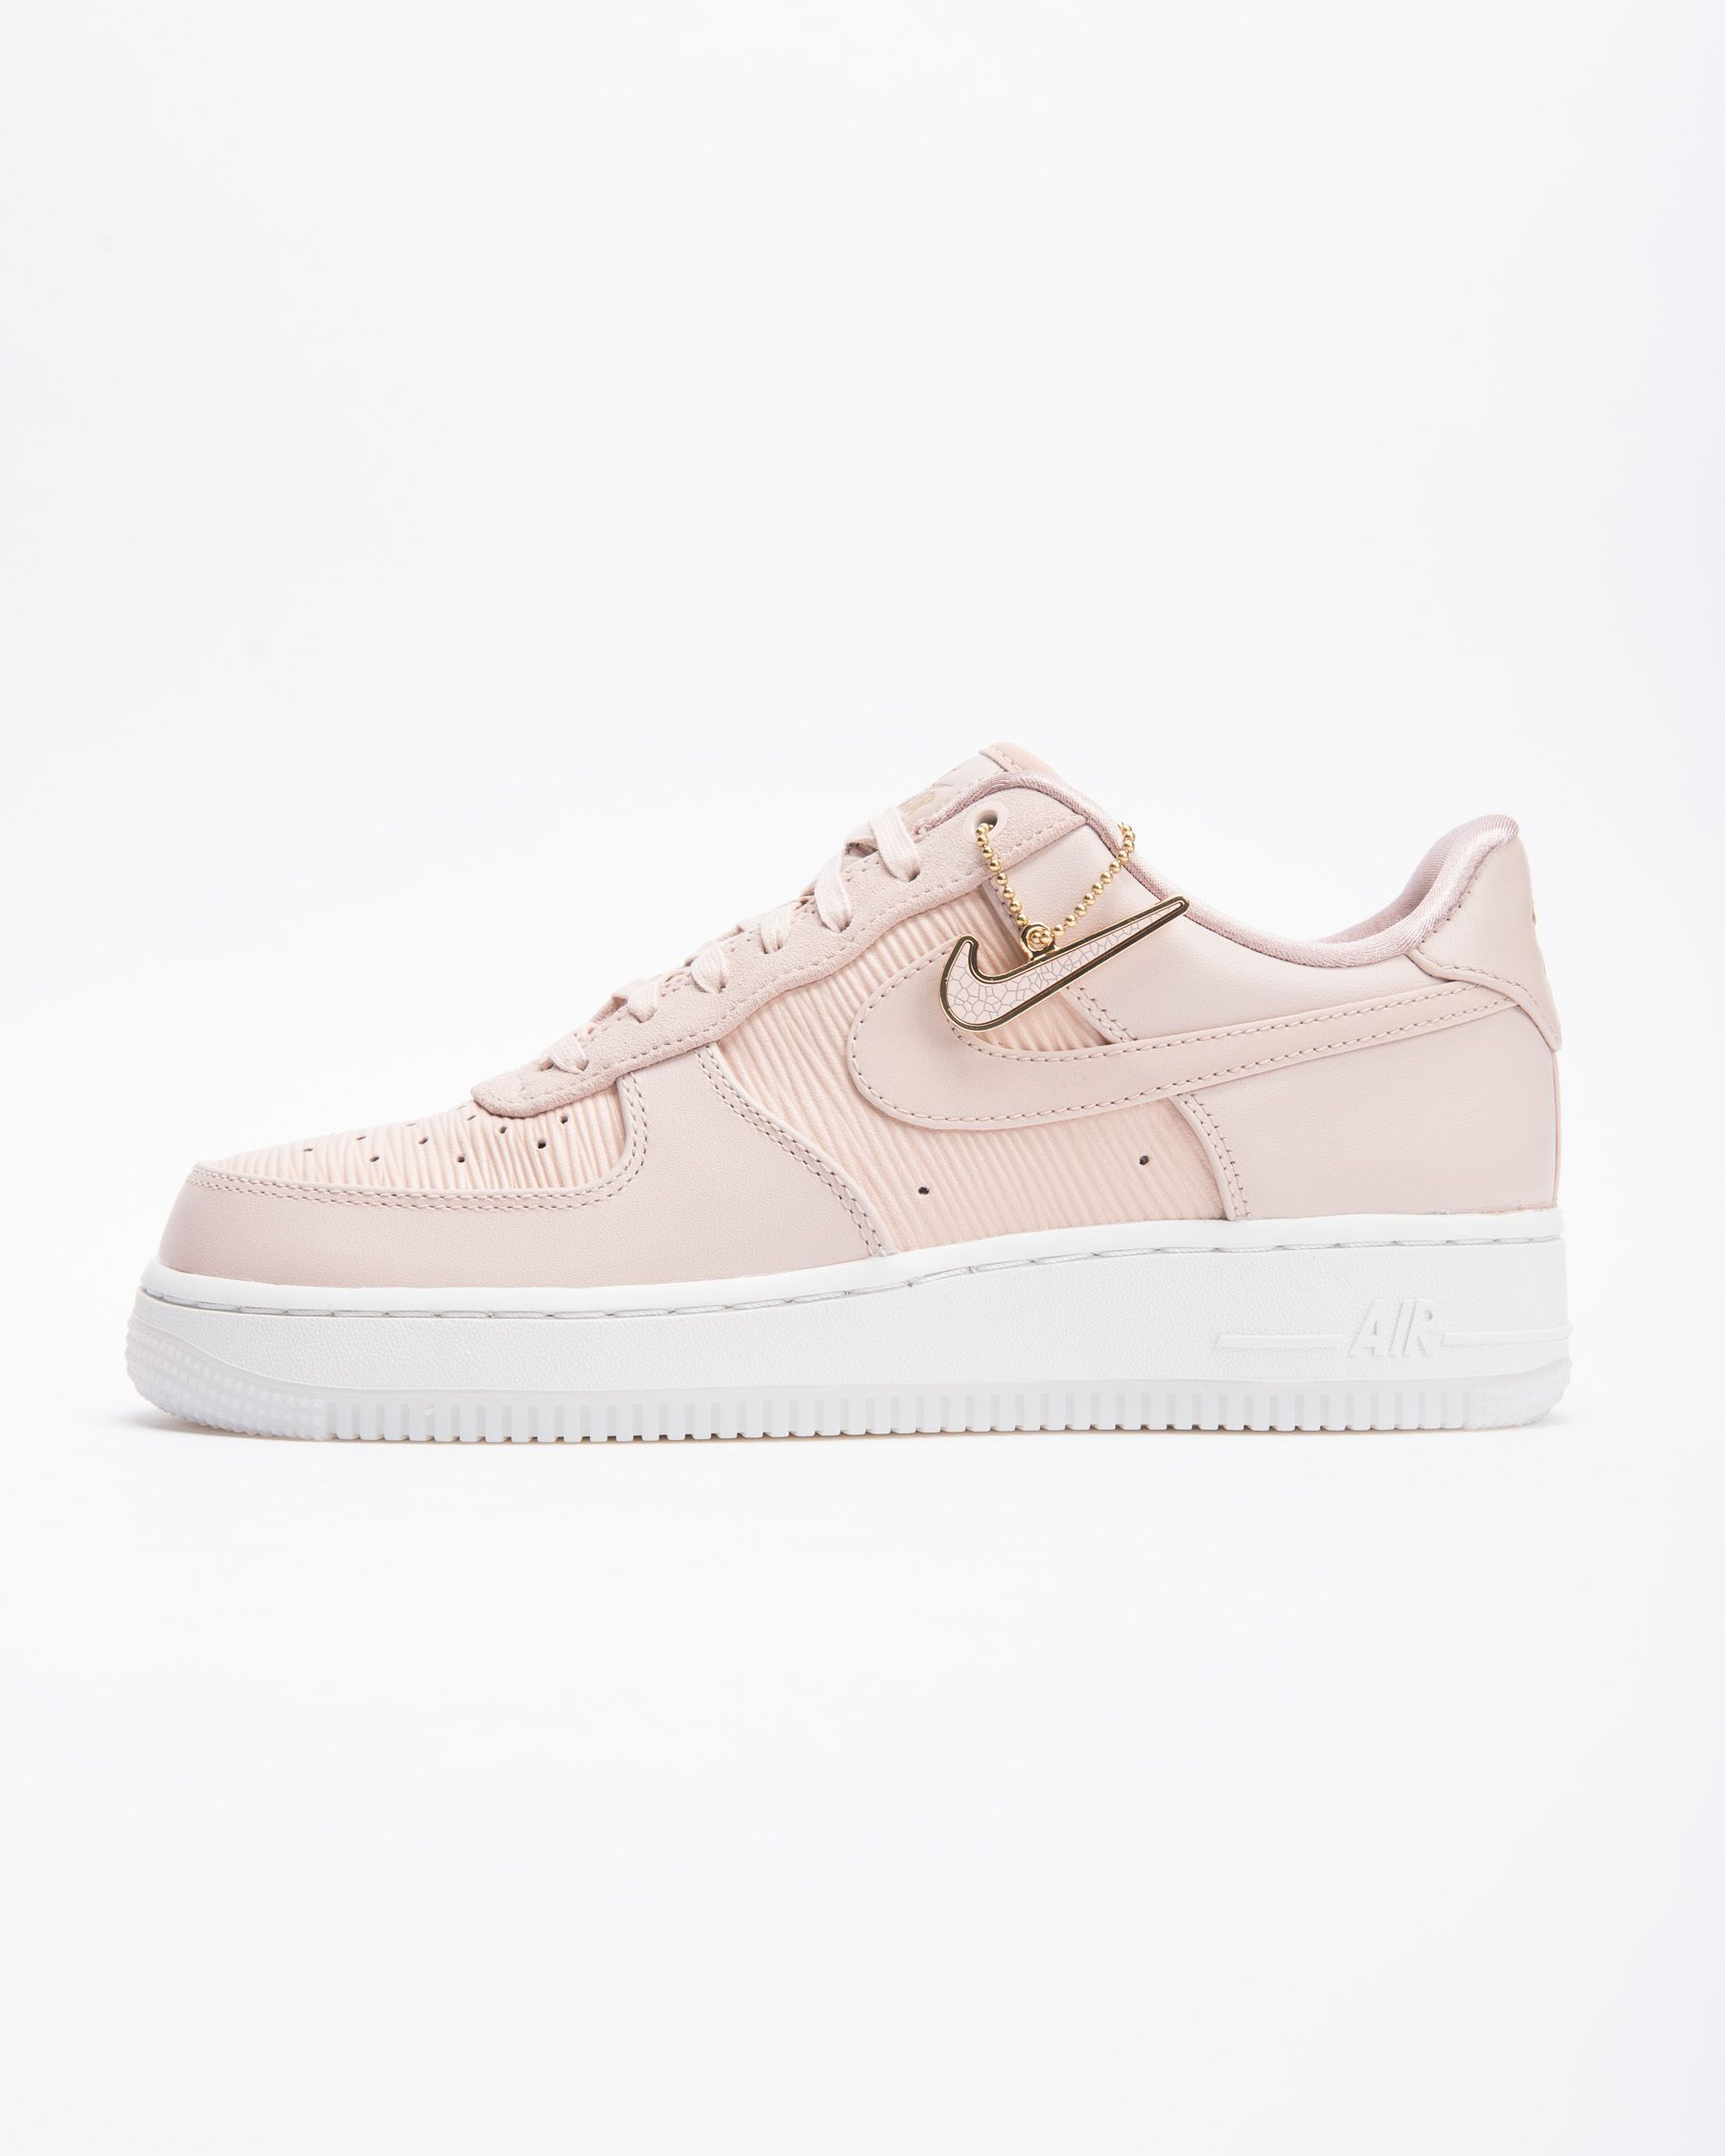 15e3eded9f4f WMNS AIR FORCE 1 07 LX